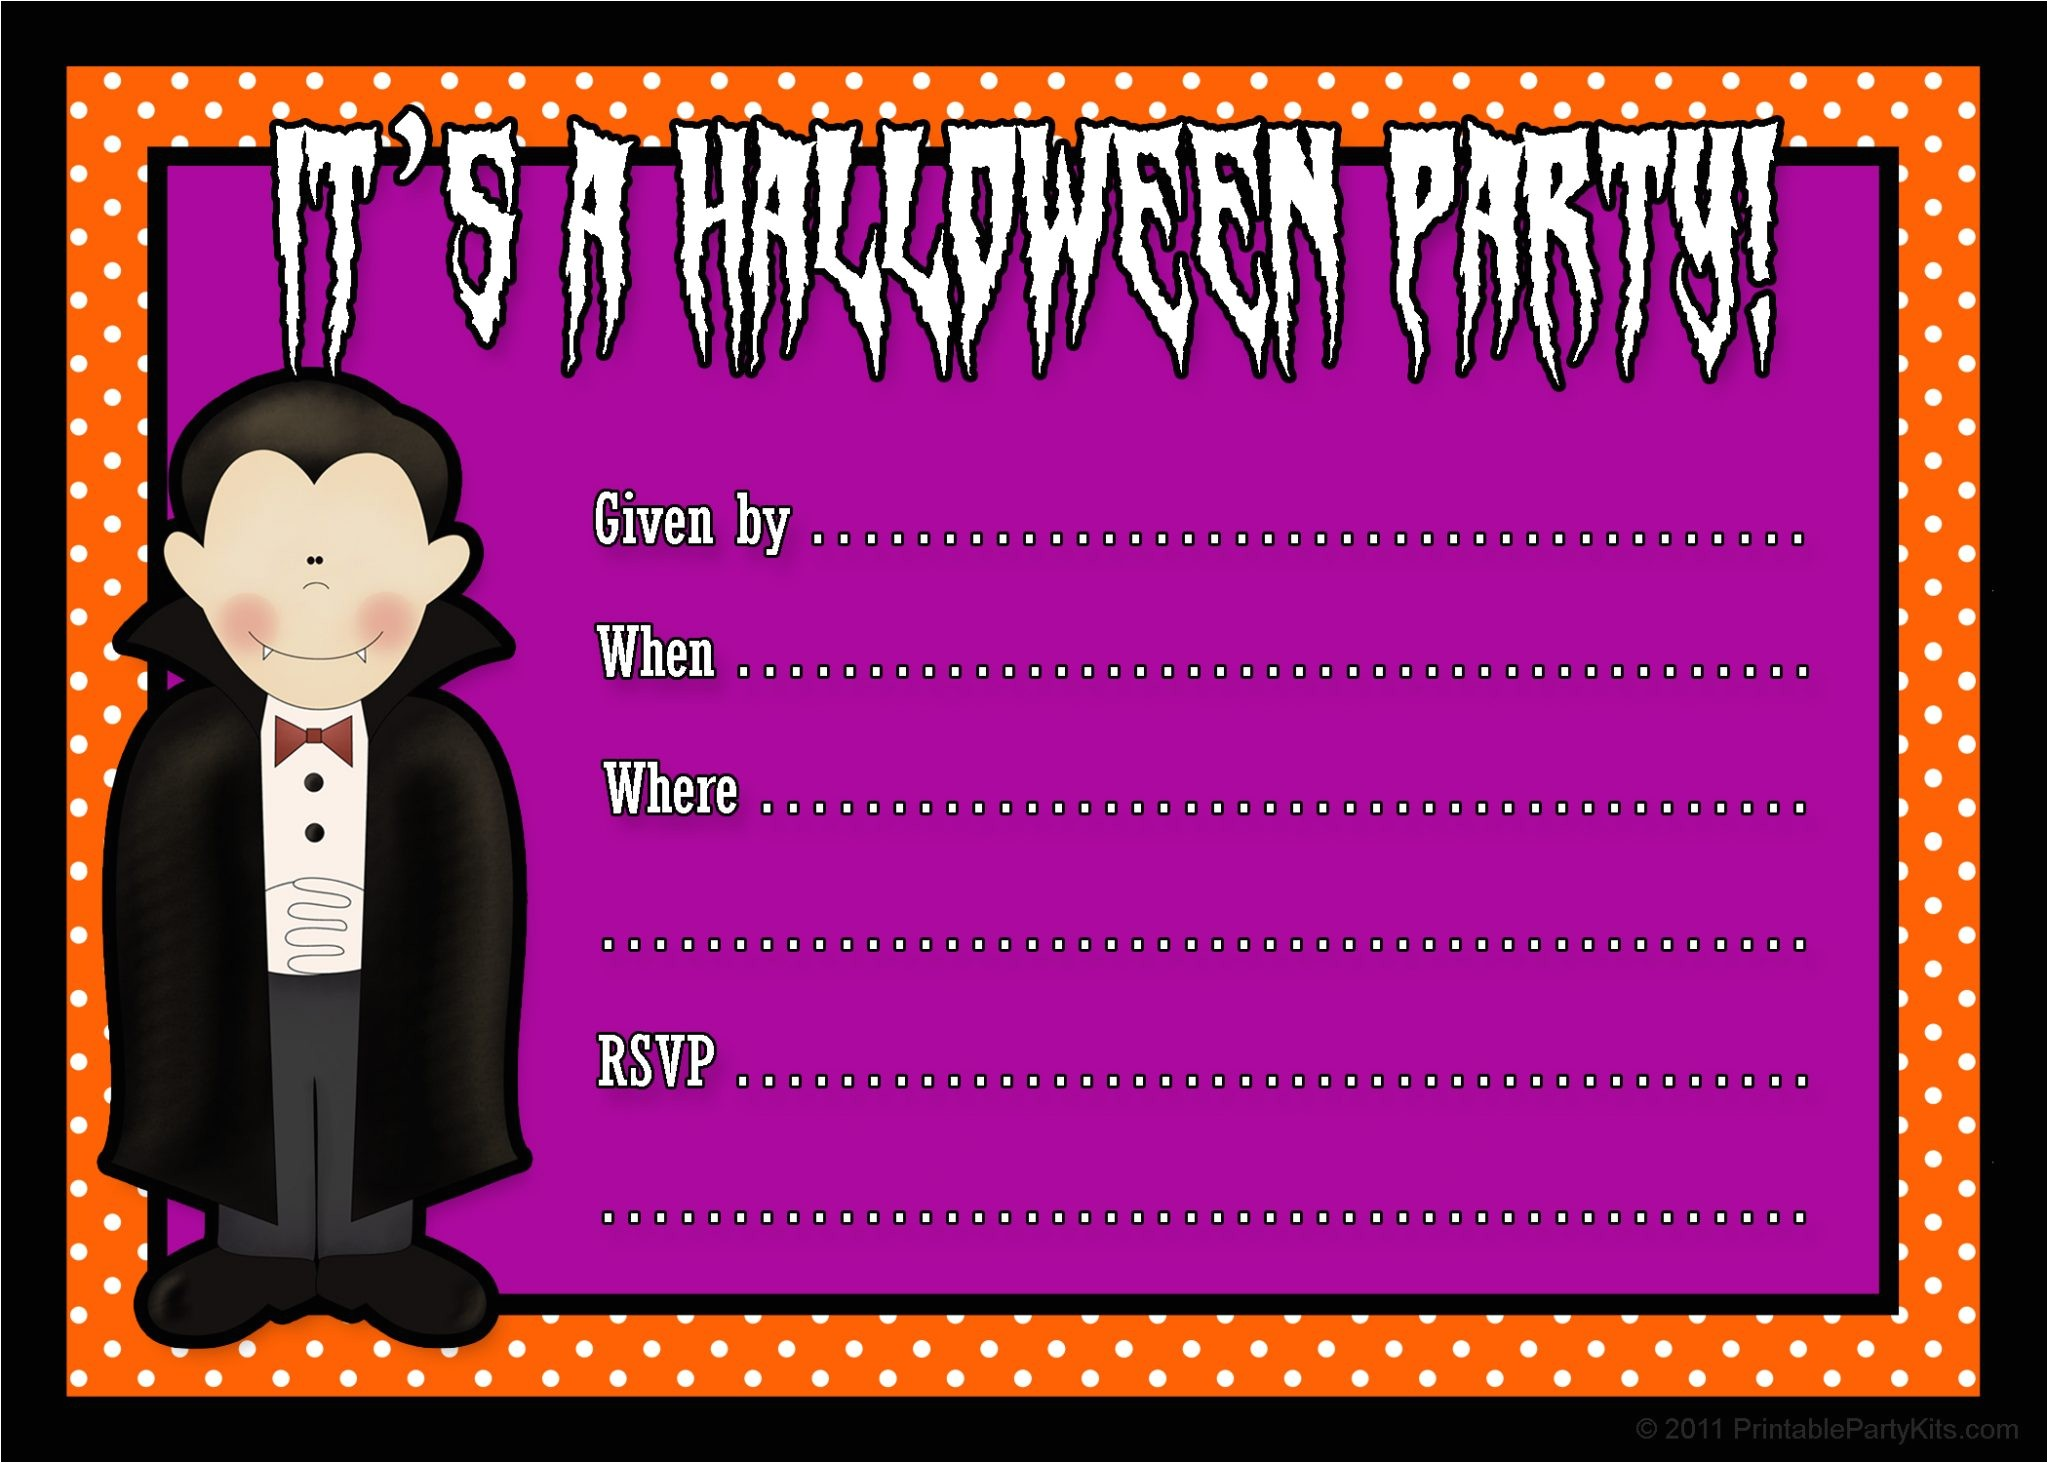 Halloween Party Invite Template Free Free Printable Halloween Party Invites